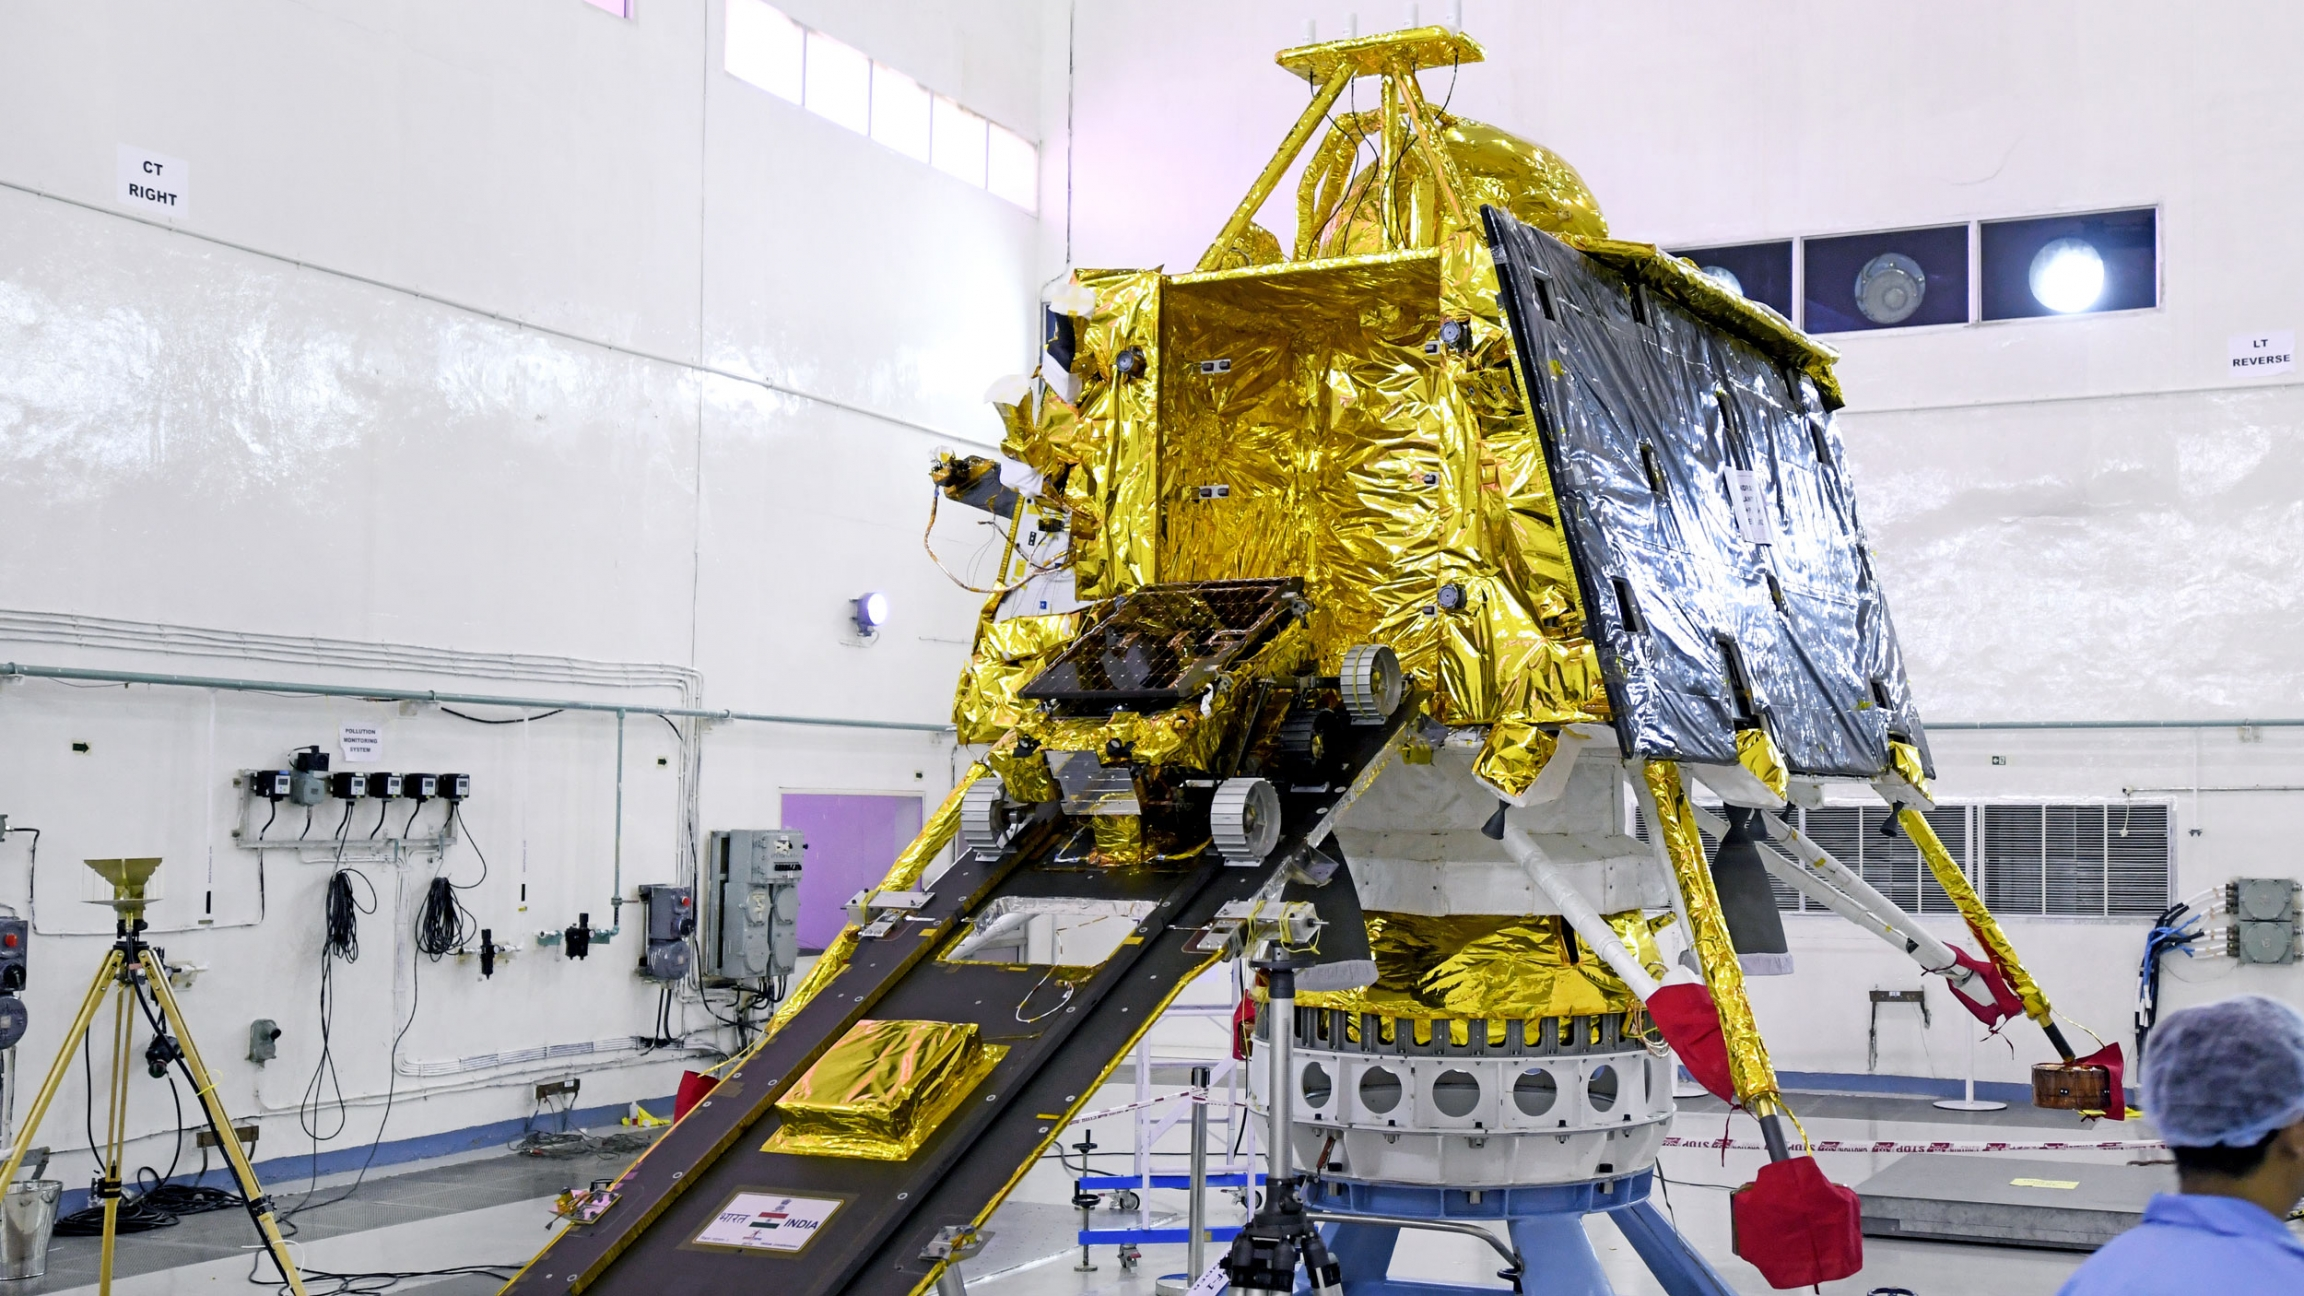 A small rover exits a large, gold spacecraft.